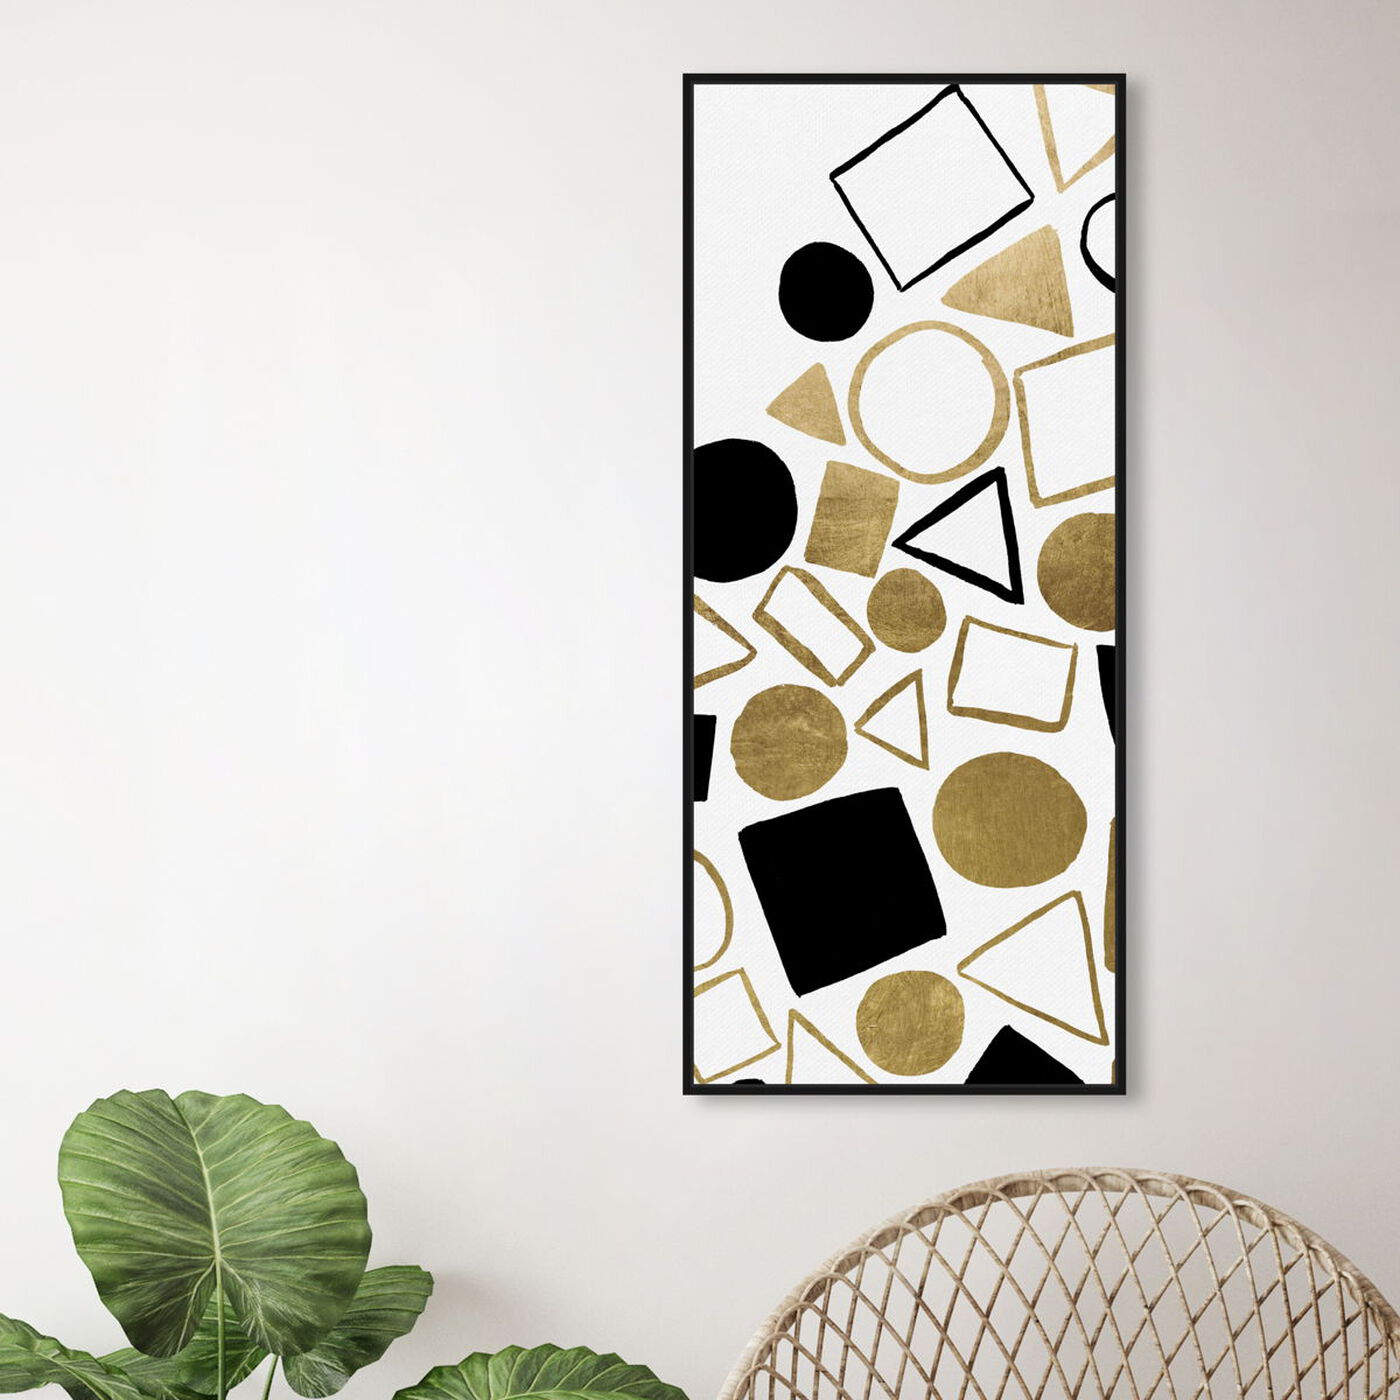 Hanging view of Geometric Game featuring abstract and geometric art.